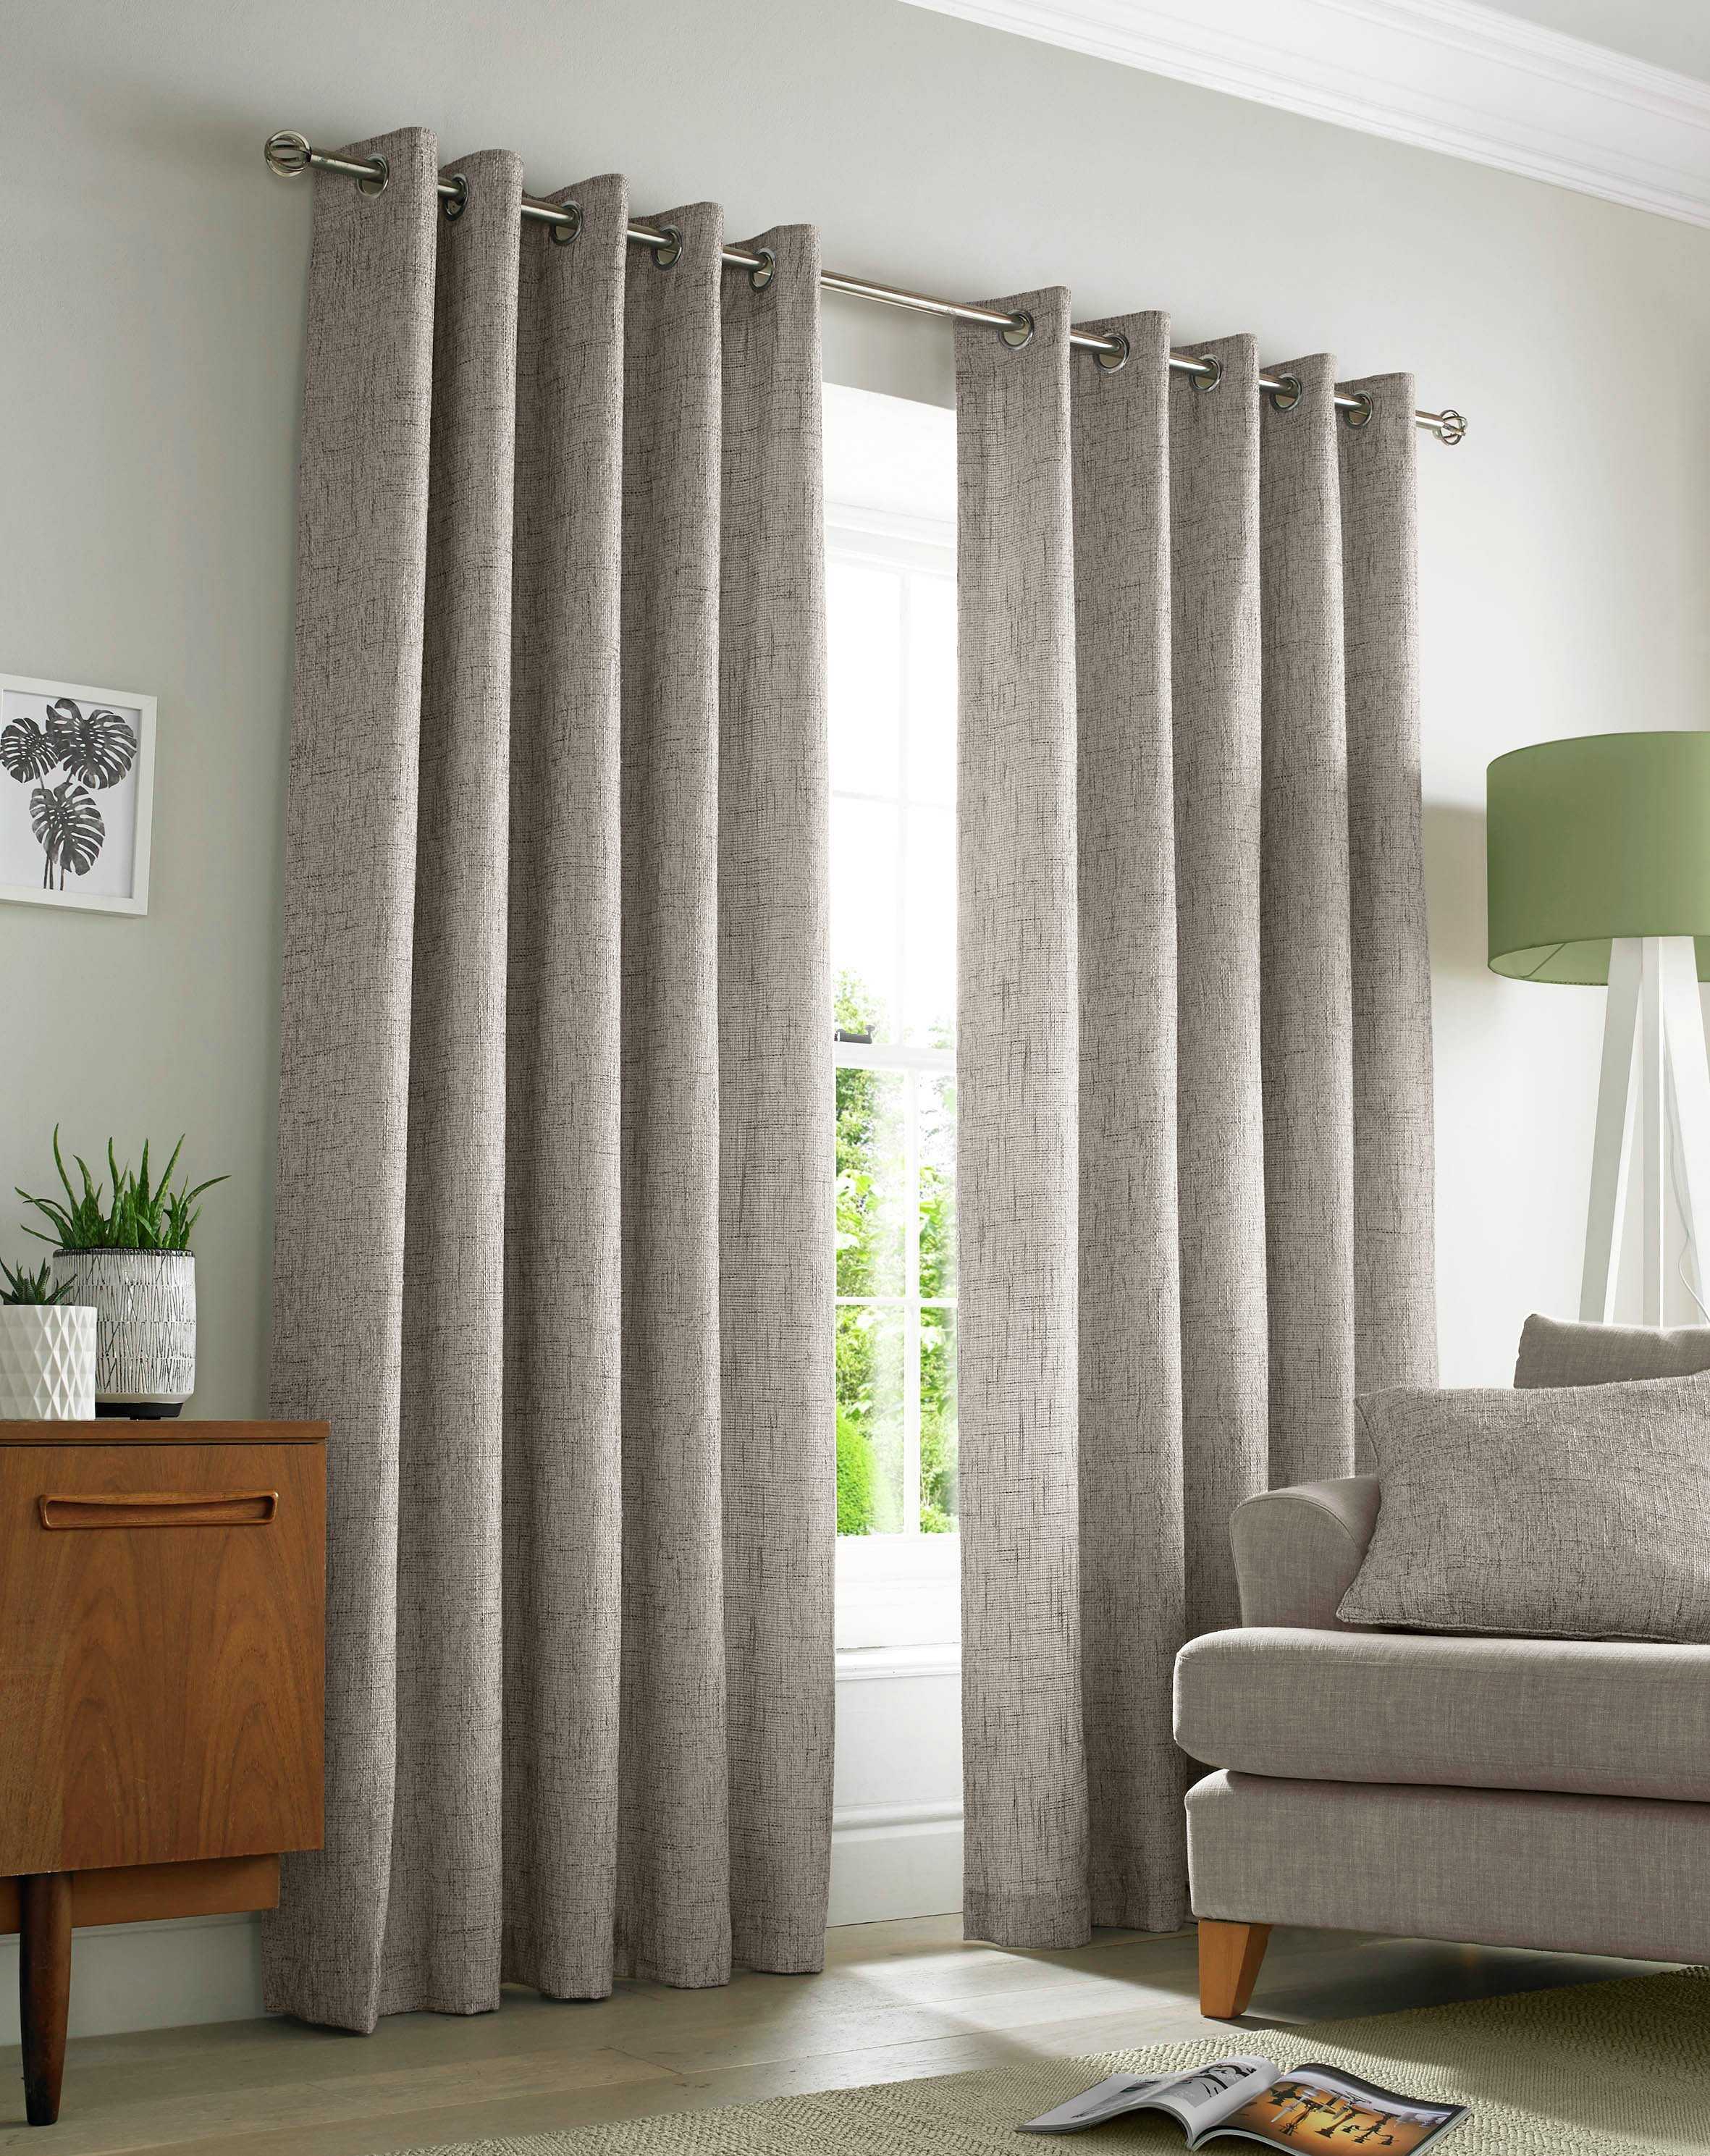 Academy Eyelet Curtains - 165x229cm - Natural.